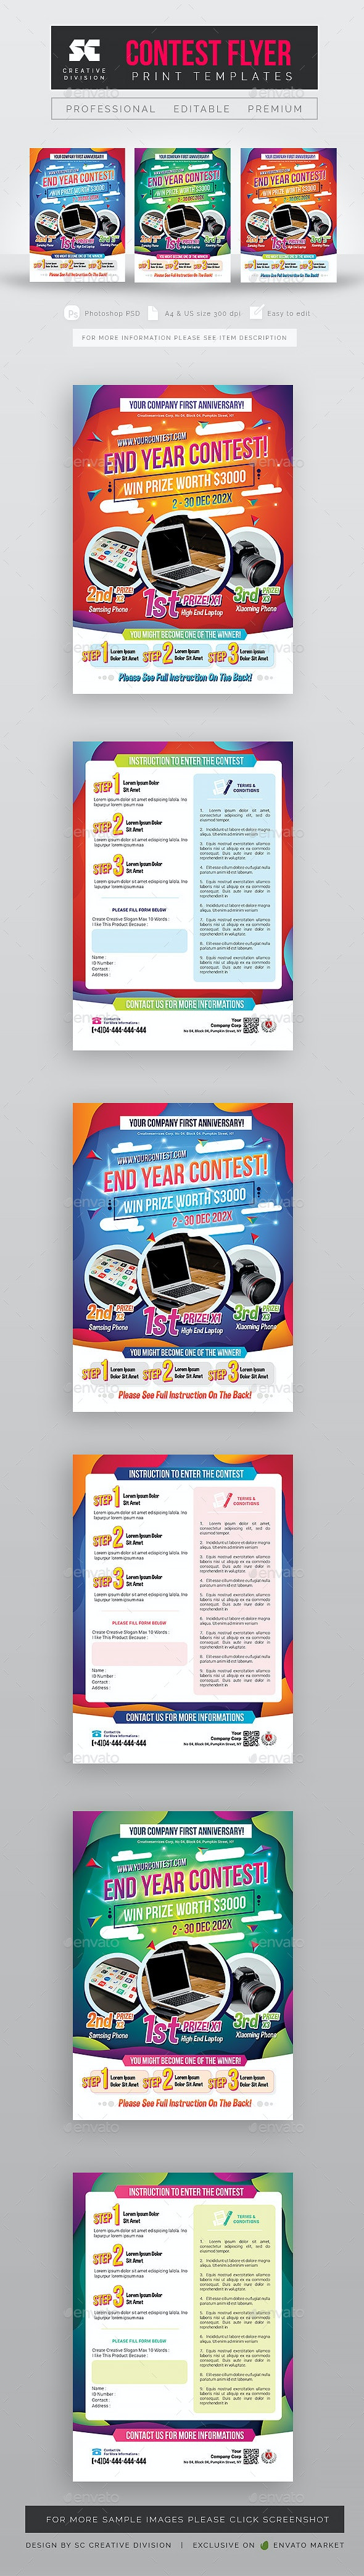 Contest Flyer - Commerce Flyers